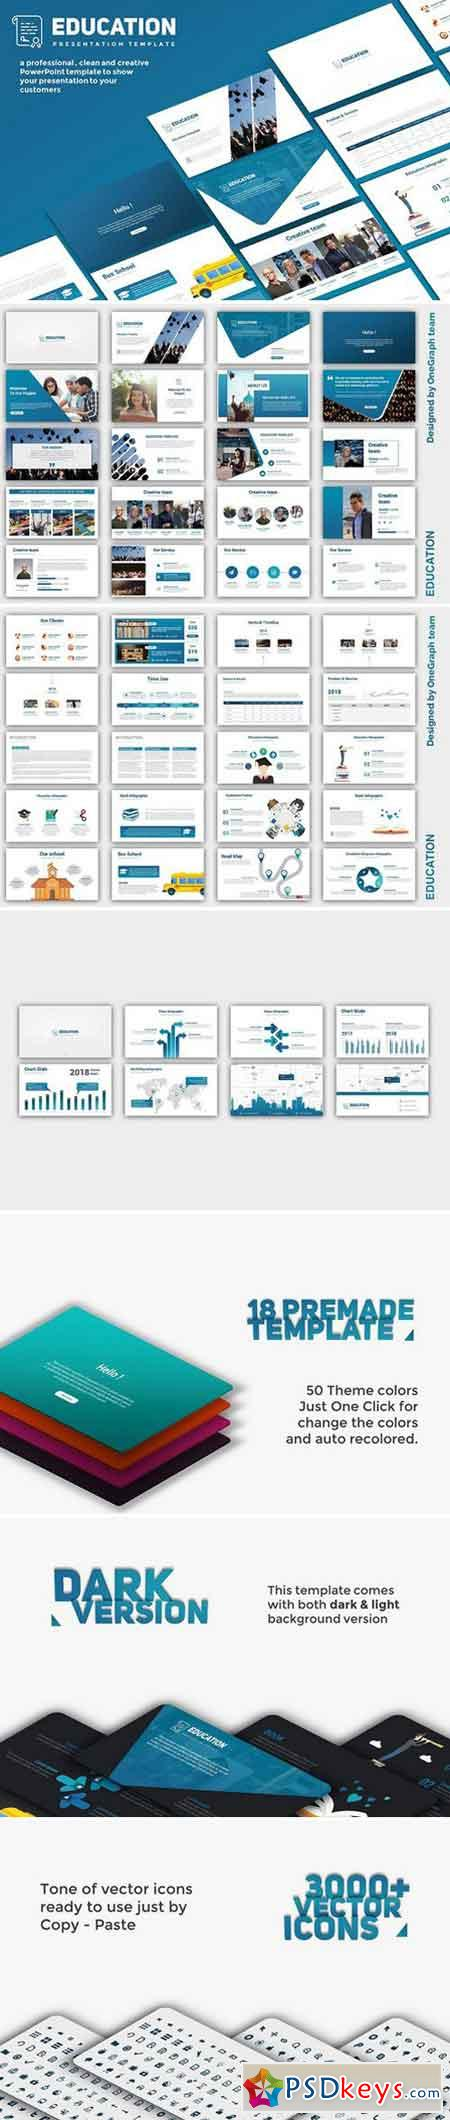 powerpoint templates torrents - powerpoint page 4 free download photoshop vector stock